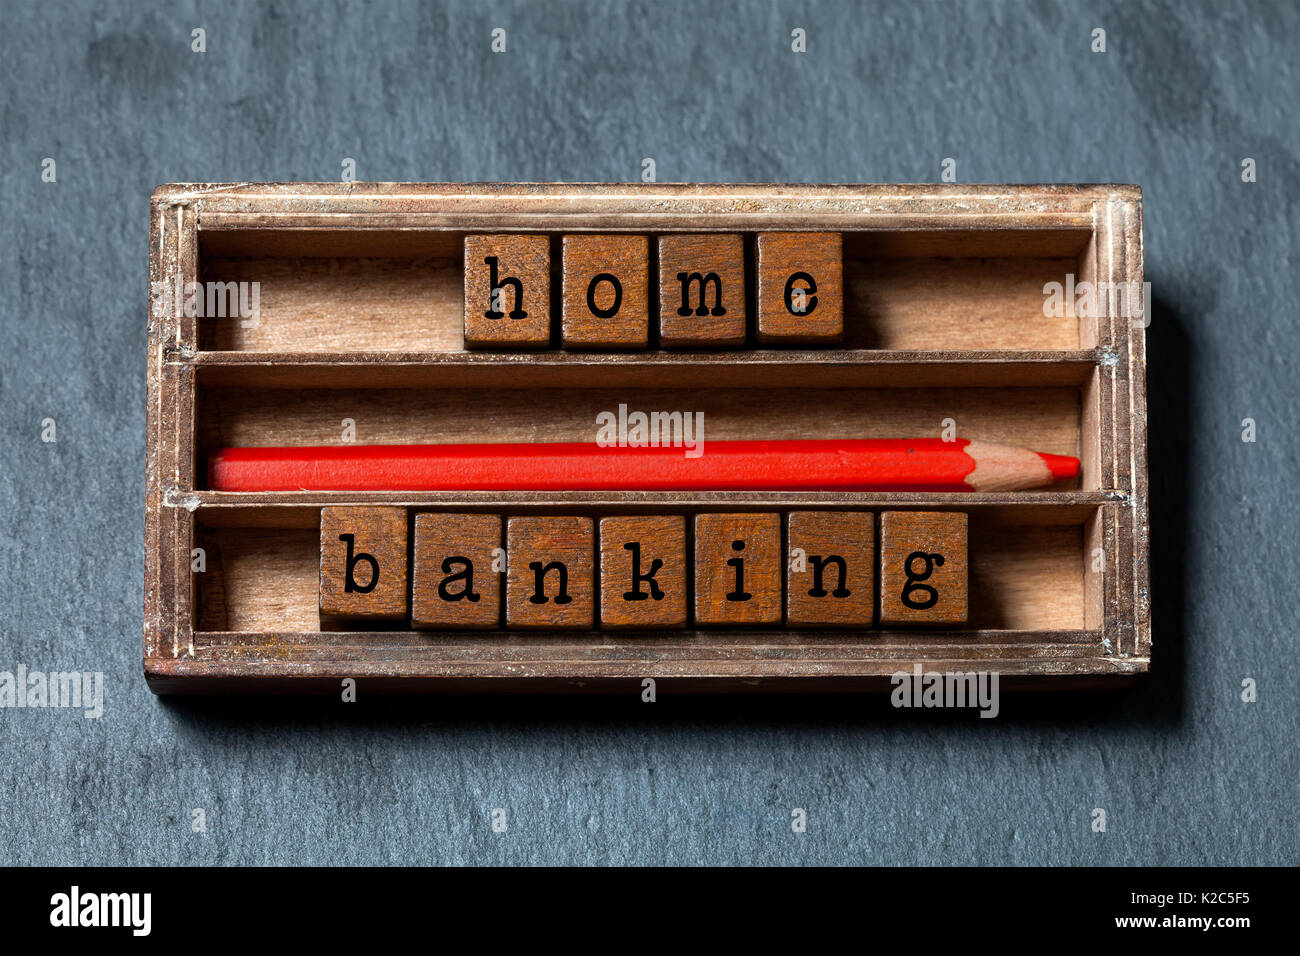 Home banking, budgeting concept image. Wooden boxes with letters, red pencil, aged box. Gray stone background, macro, Stock Photo